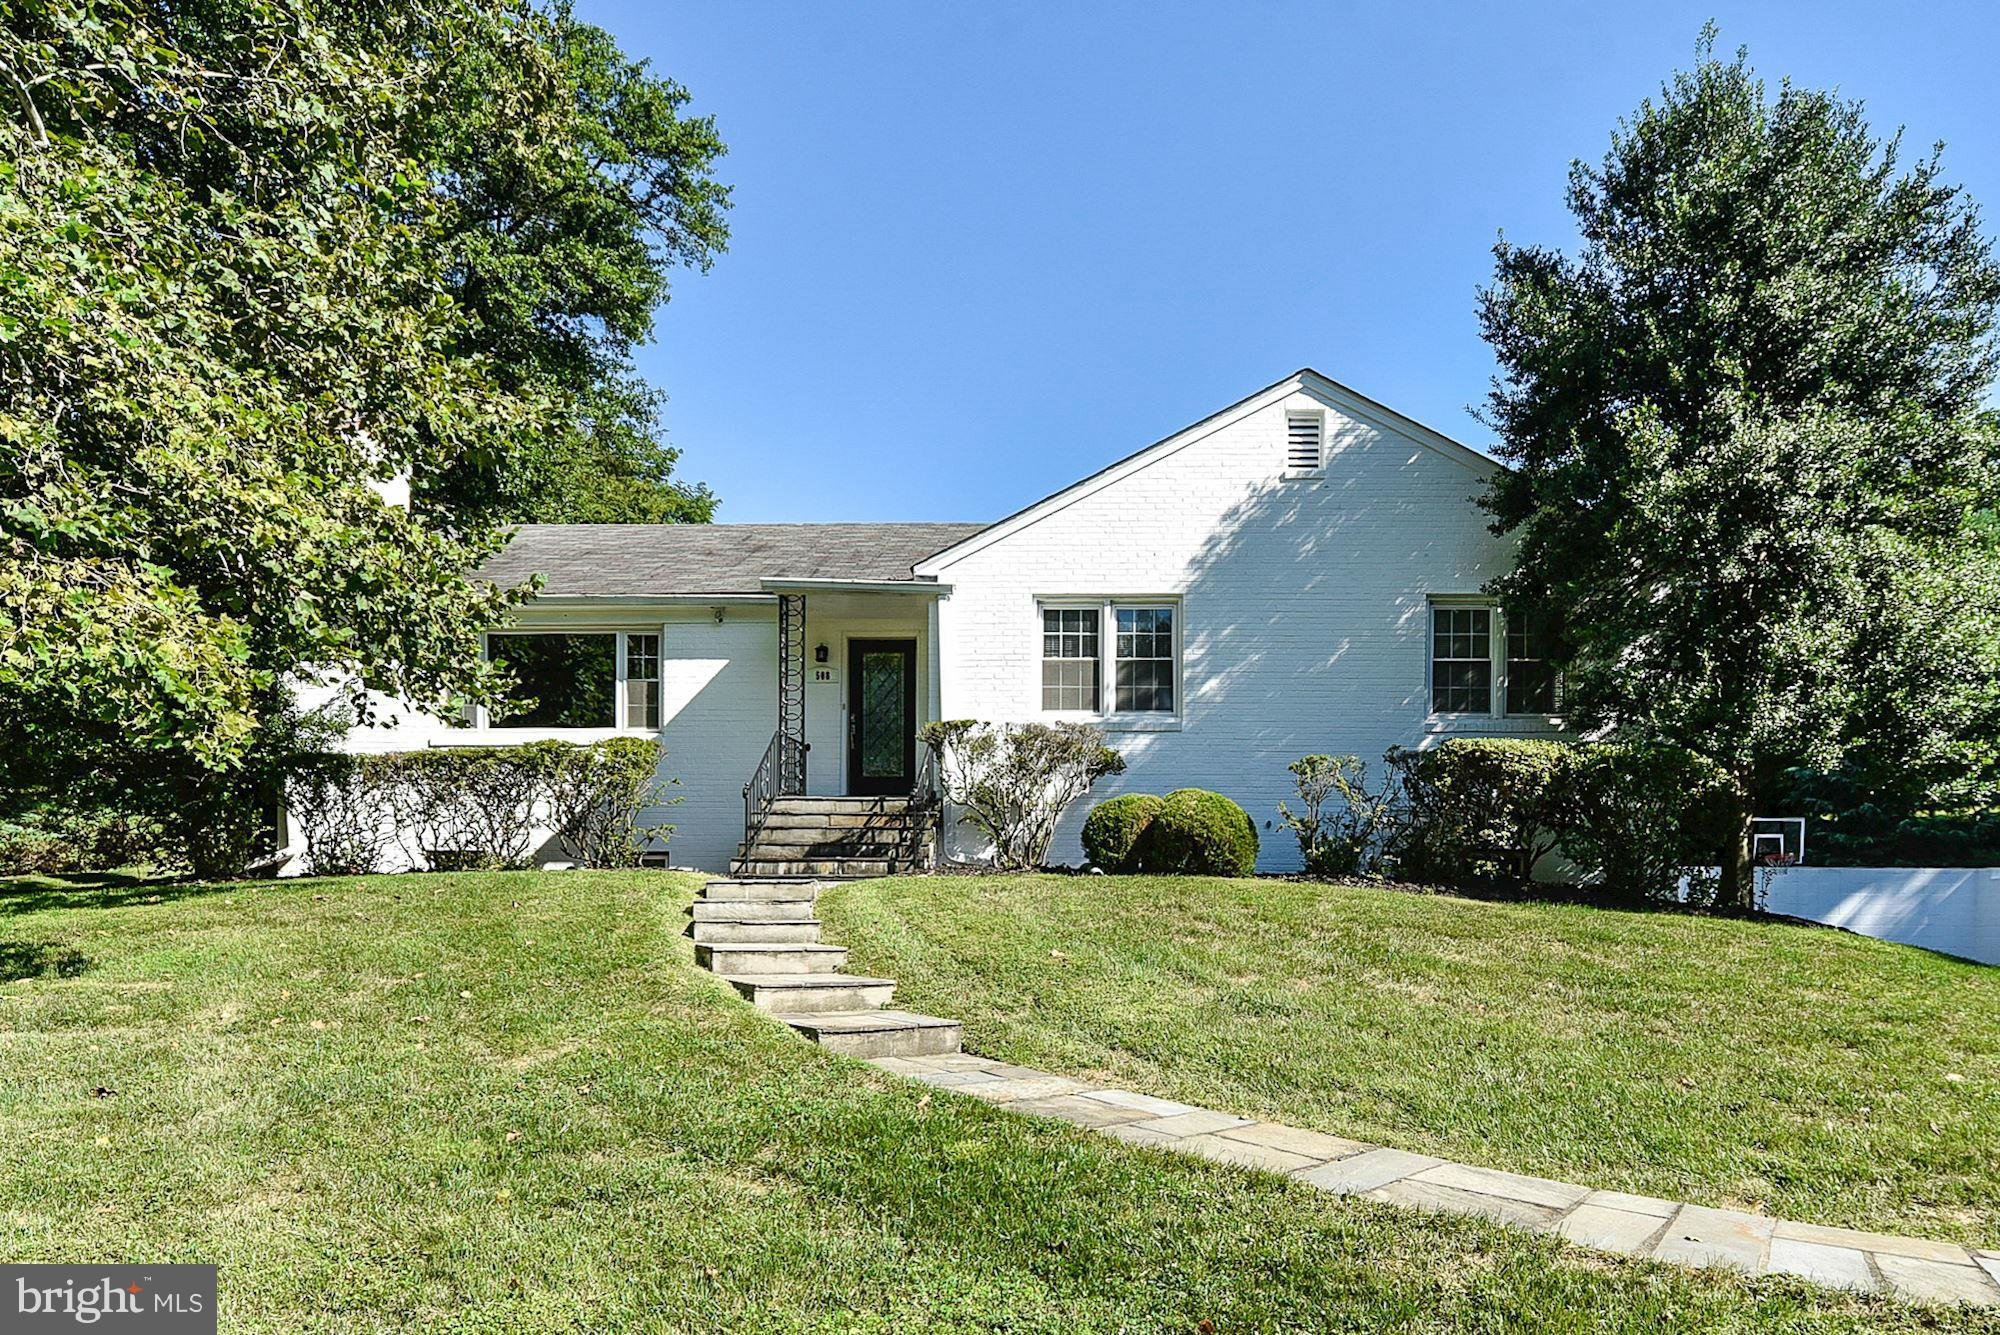 508 APPLE GROVE ROAD, SILVER SPRING, MD 20904